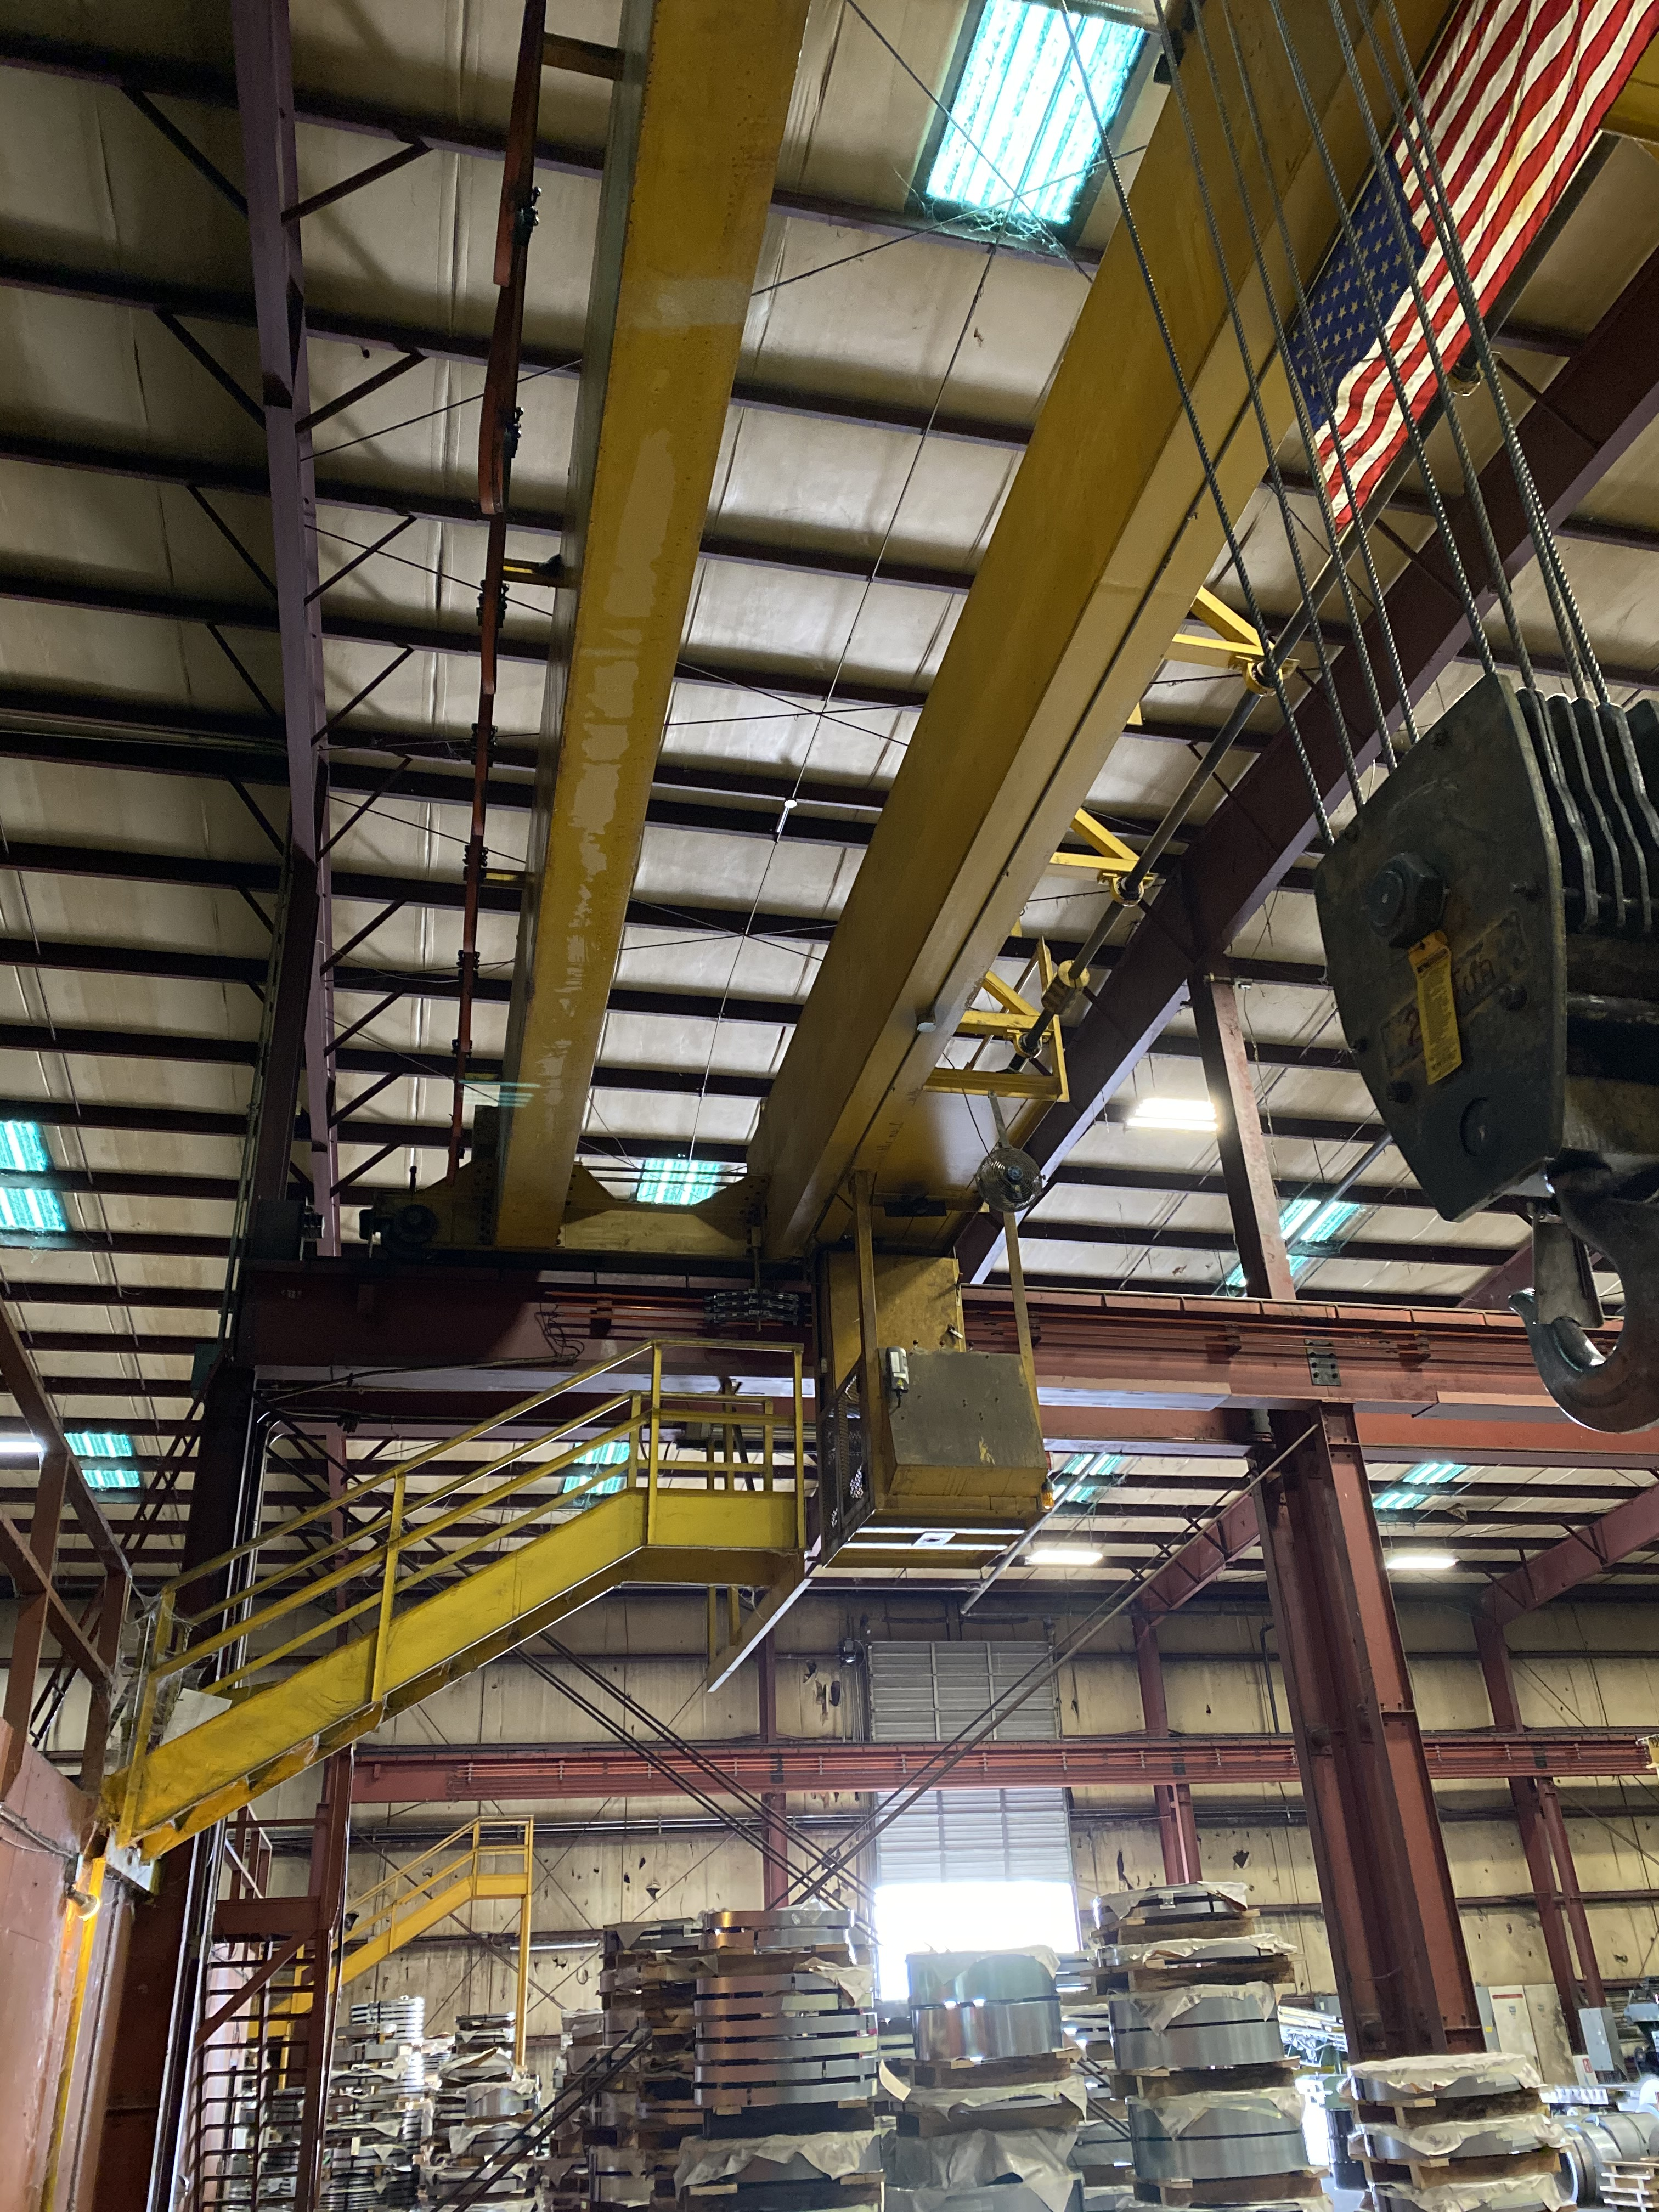 53,000 SQ. FT. Industrial Crane Building,3,000 SQ. FT. - Image 4 of 5